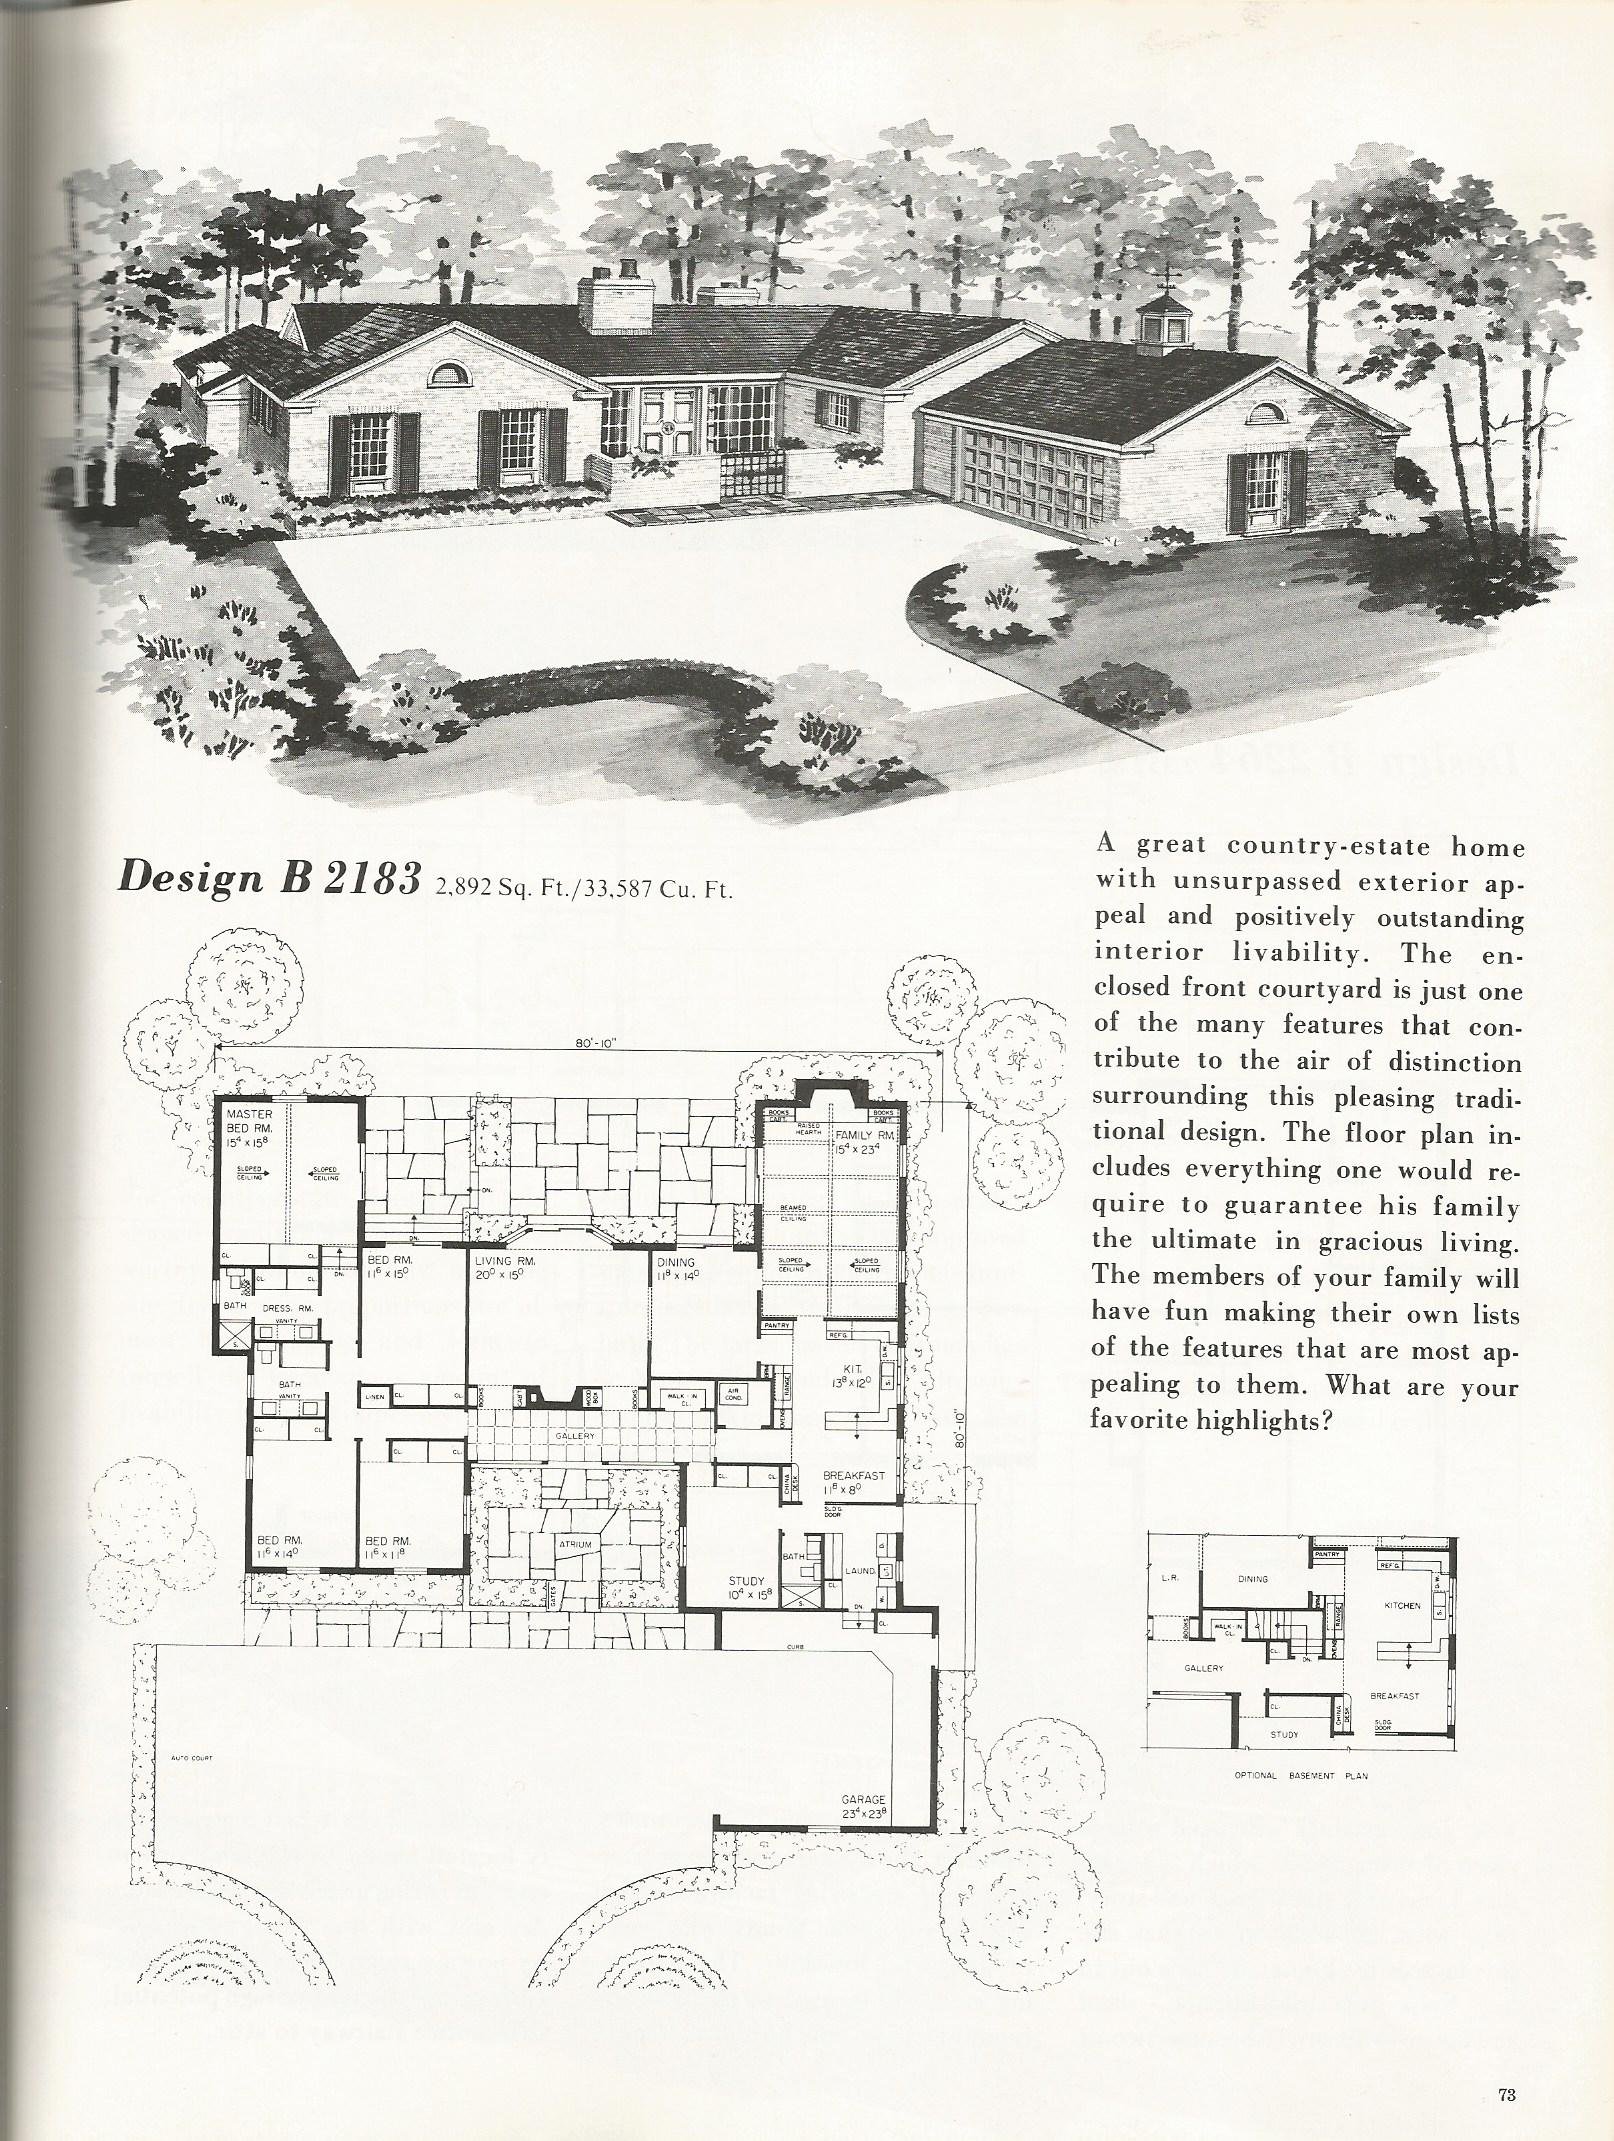 Vintage house plans 2183 antique alter ego for Vintage home plans